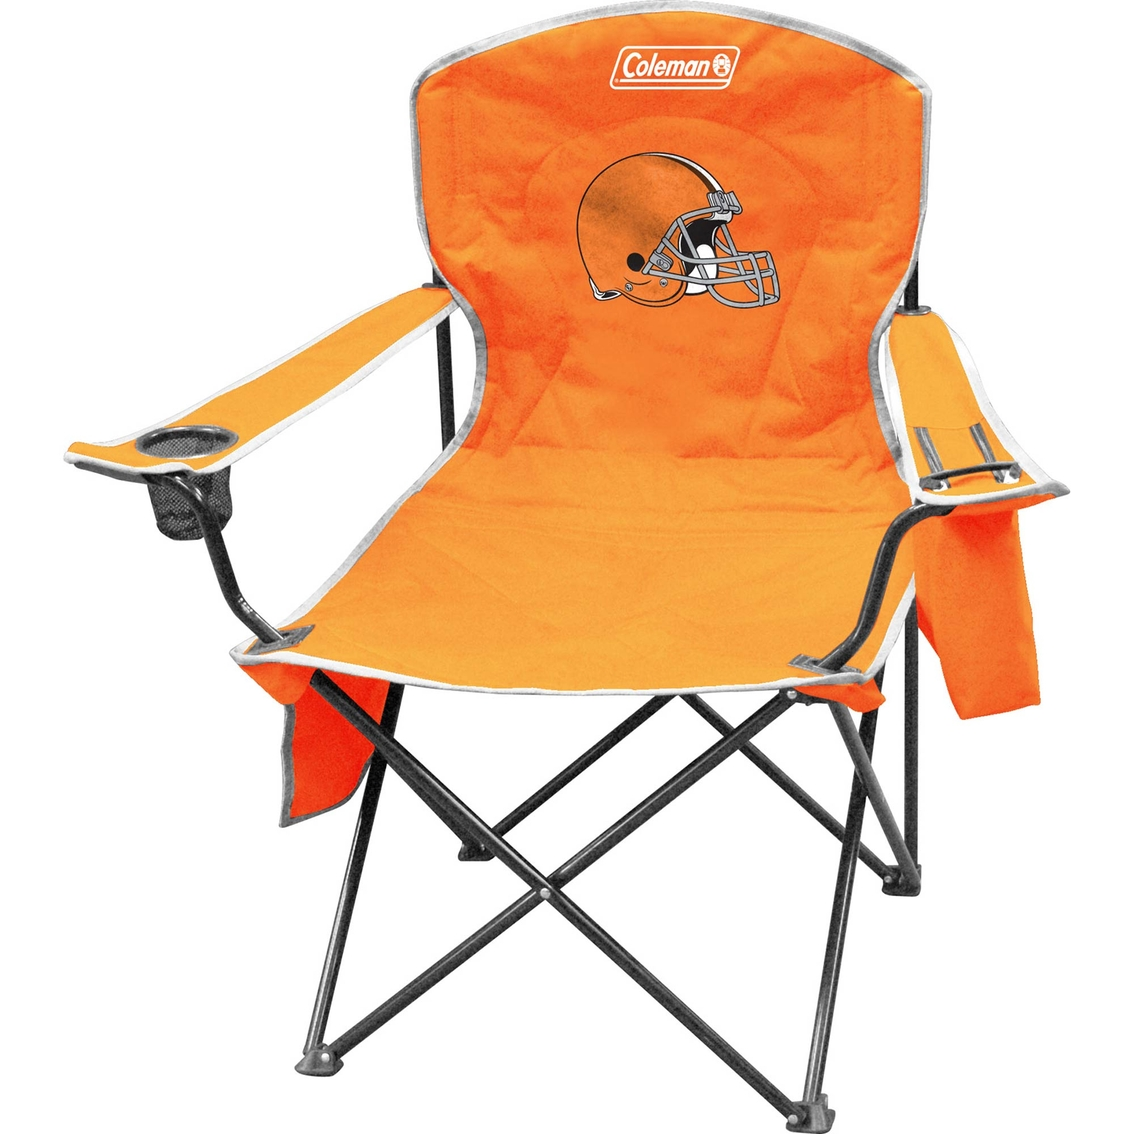 coleman max camping chair cozee home covers jarden sports licensing nfl cleveland browns cooler quad